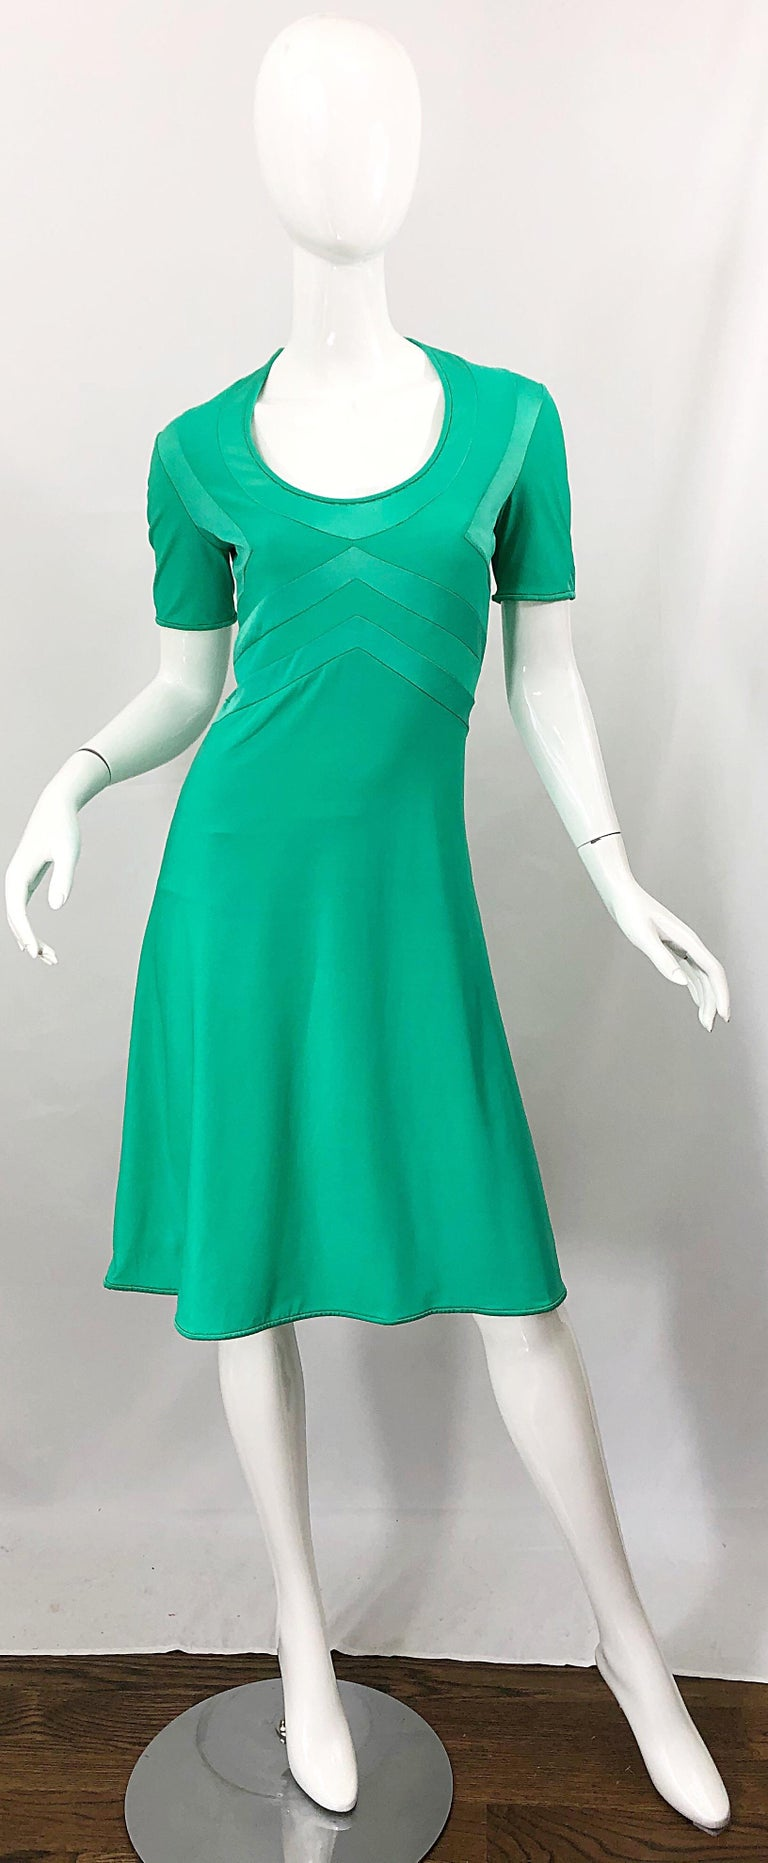 Giorgio di Sant Angelo Kelly Green Slinky Bodysuit Vintage 70s Jersey Dress For Sale 11